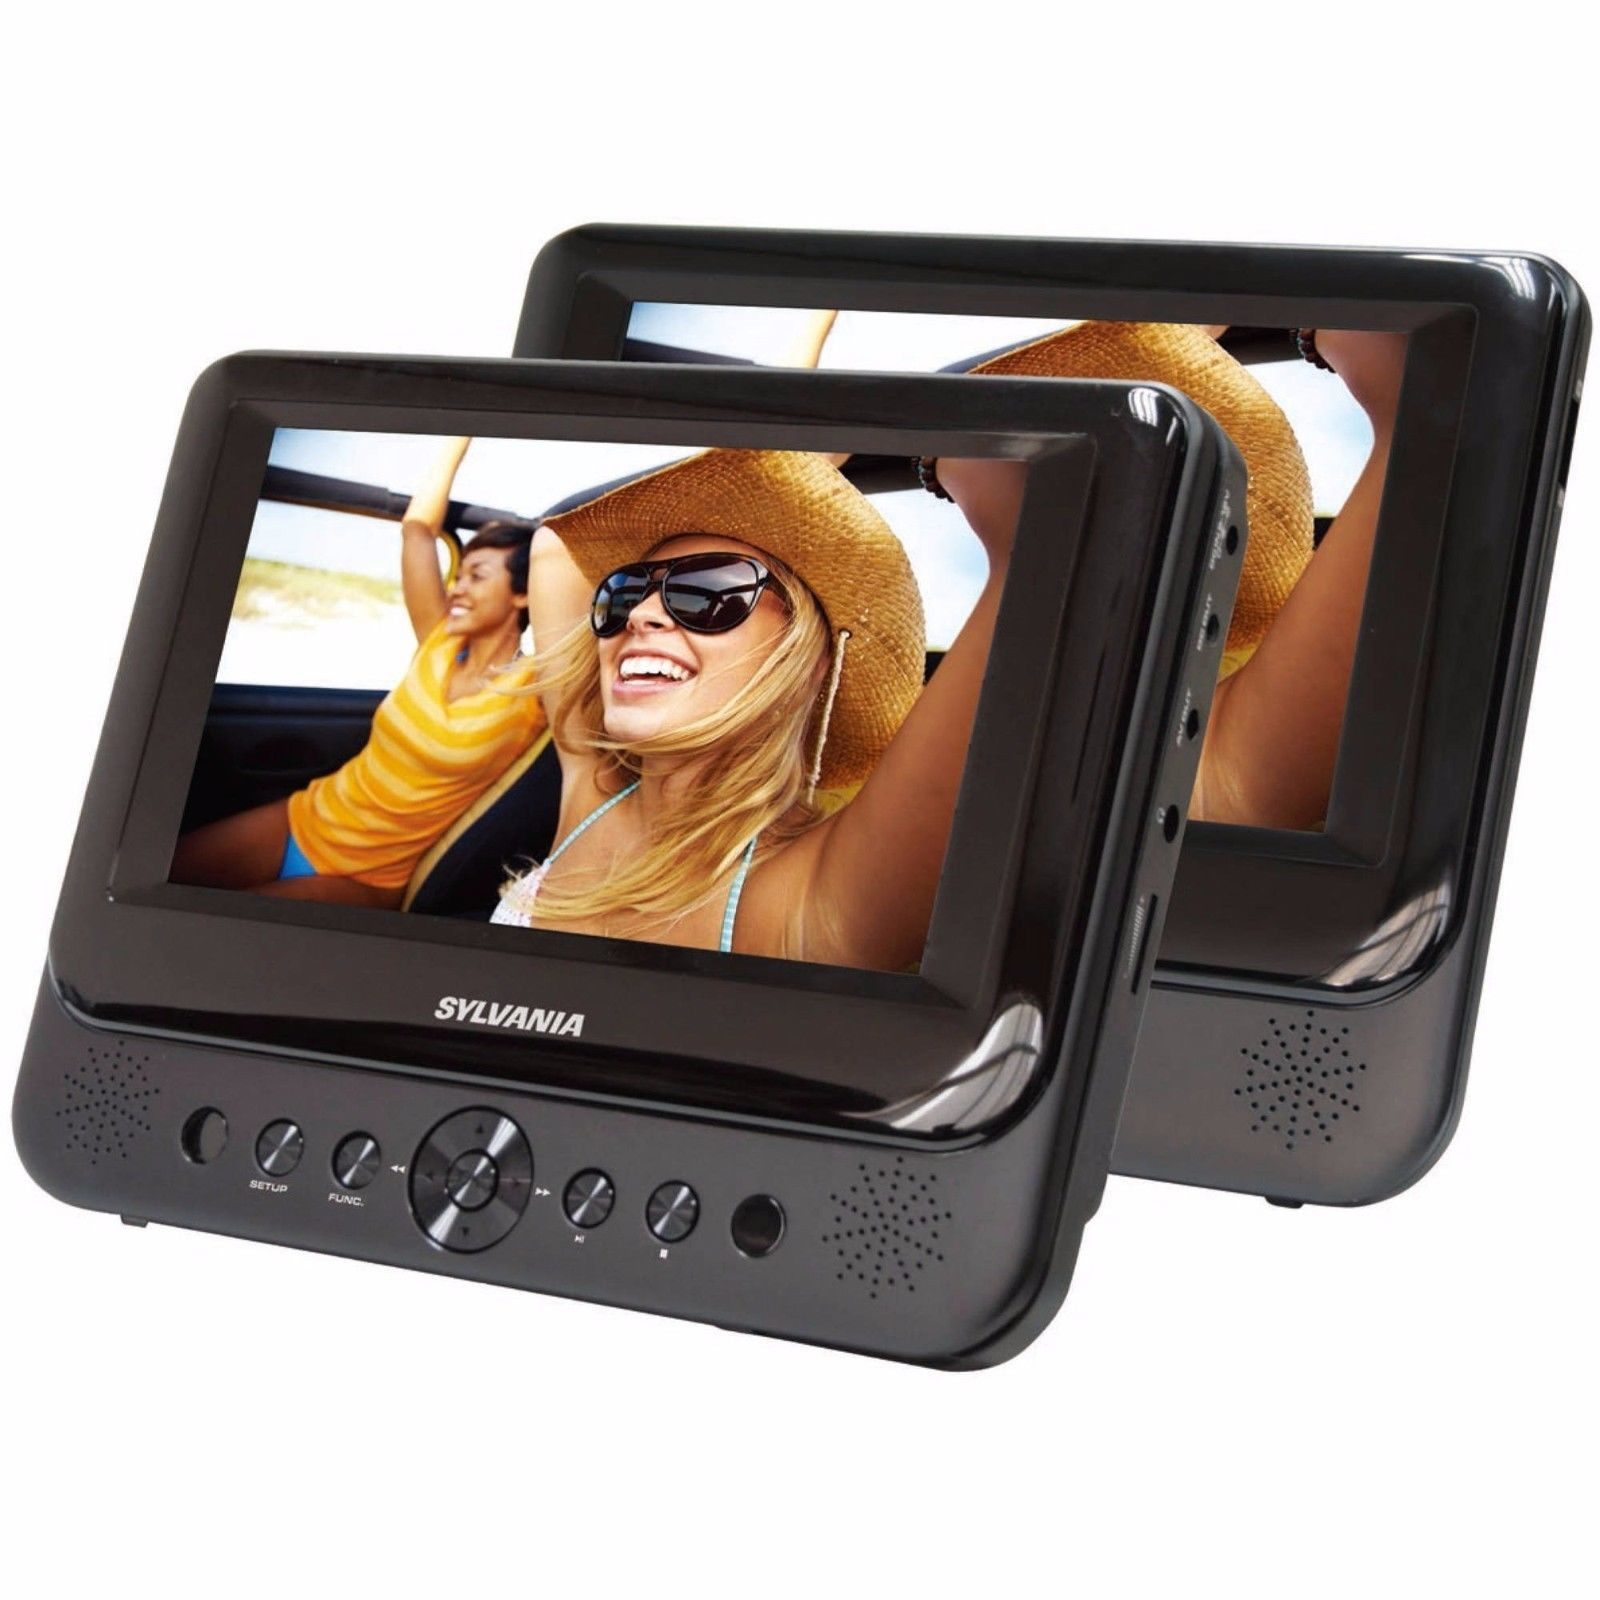 Car monitors w built in player car dvd player dual screen portable for headrest